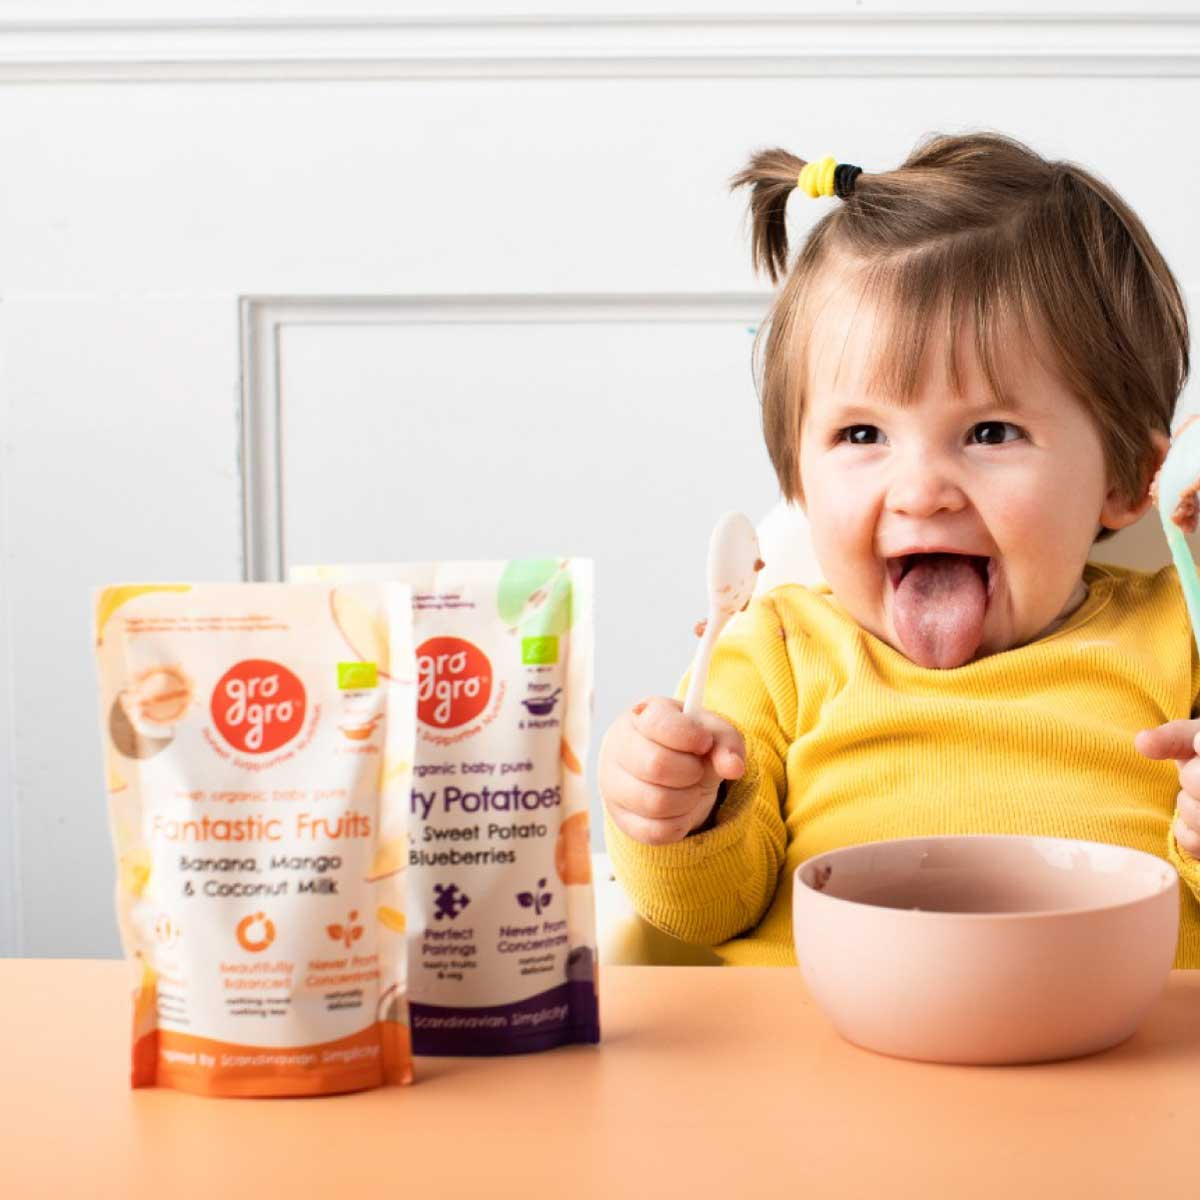 Gro Gro Cold Pressed Baby Food Packaging Design